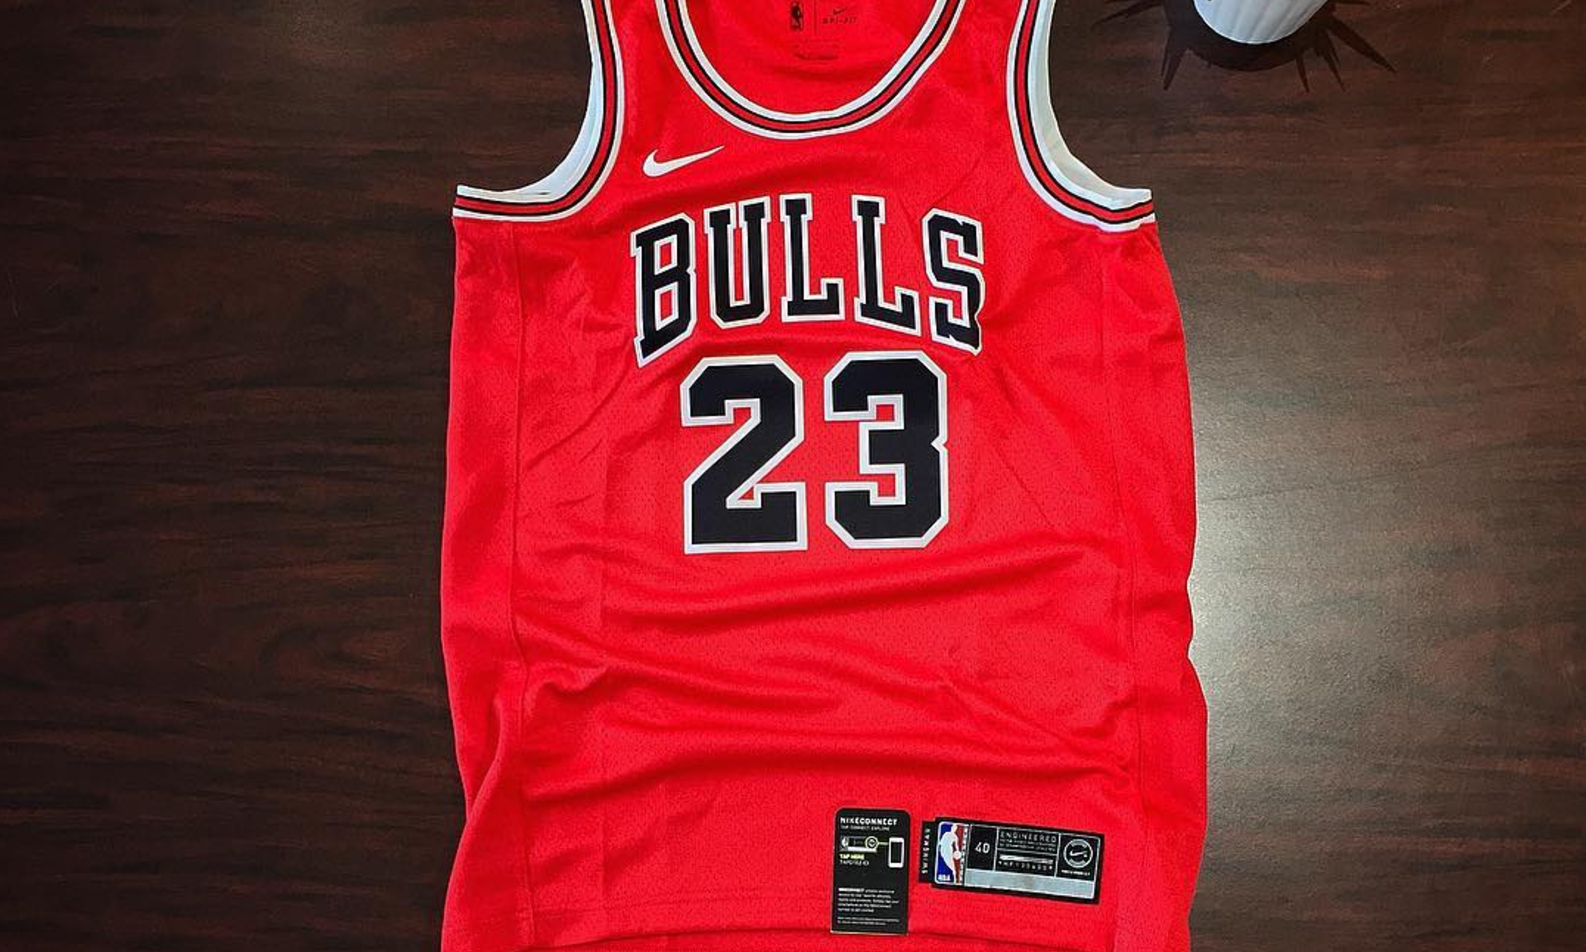 huge selection of 91a76 01187 Michael Jordan's Bulls Jersey Returns in Swoosh Mode ...